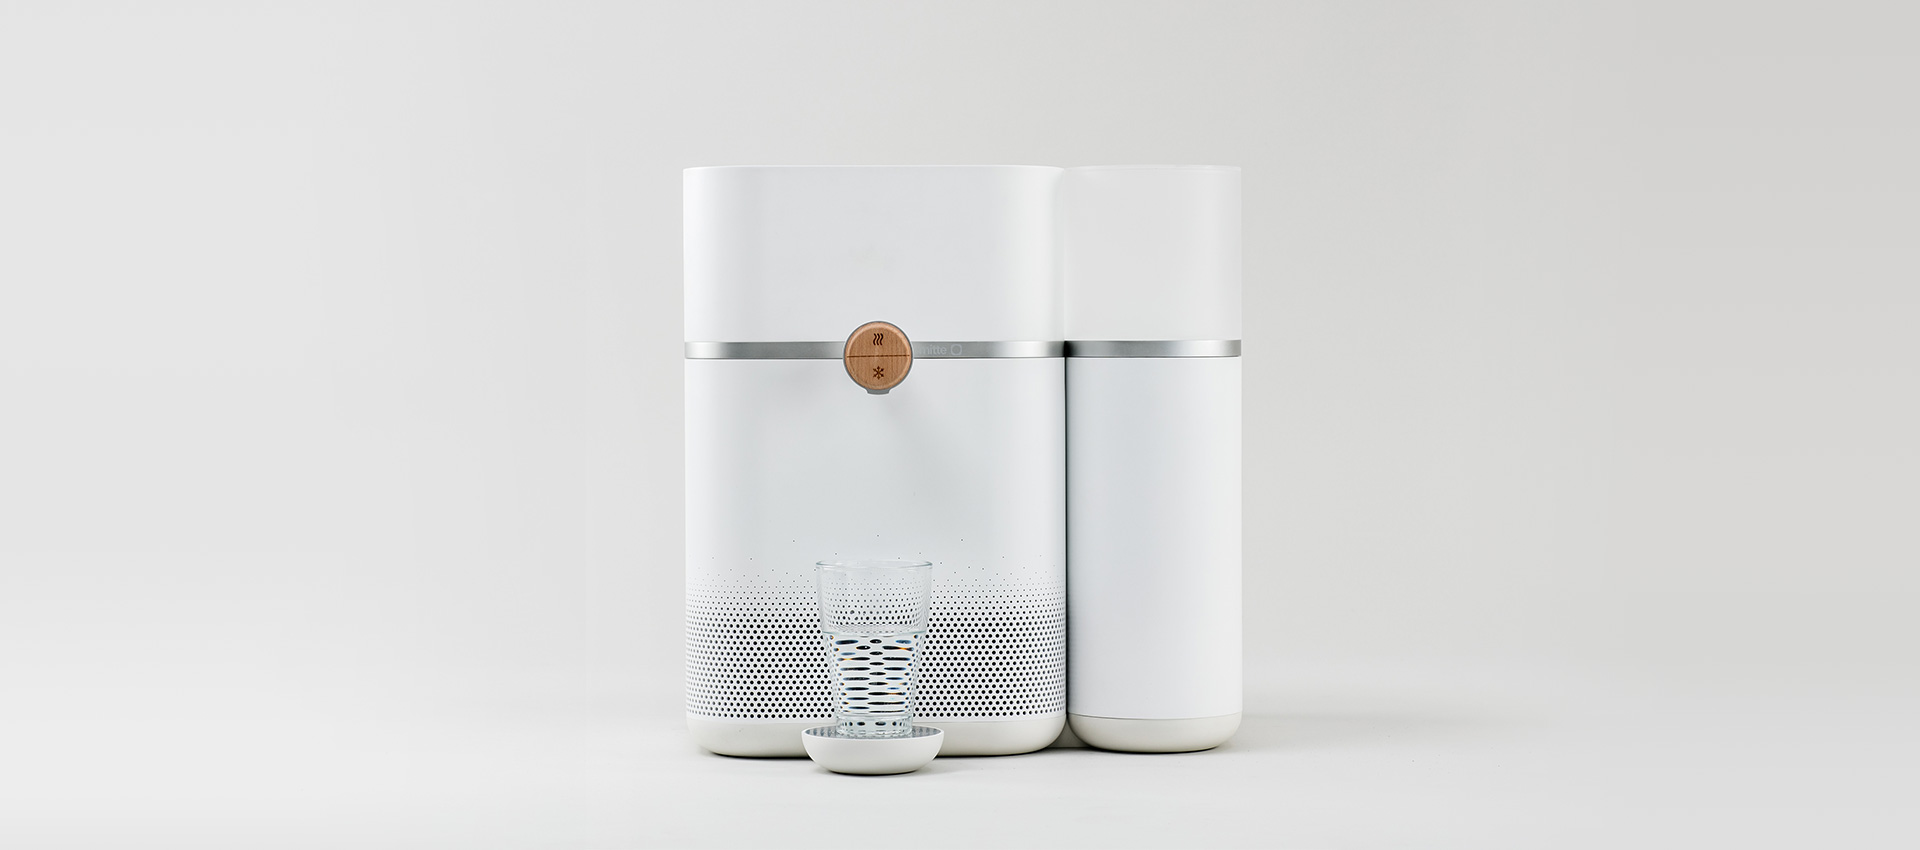 A personalized hydration experience at home